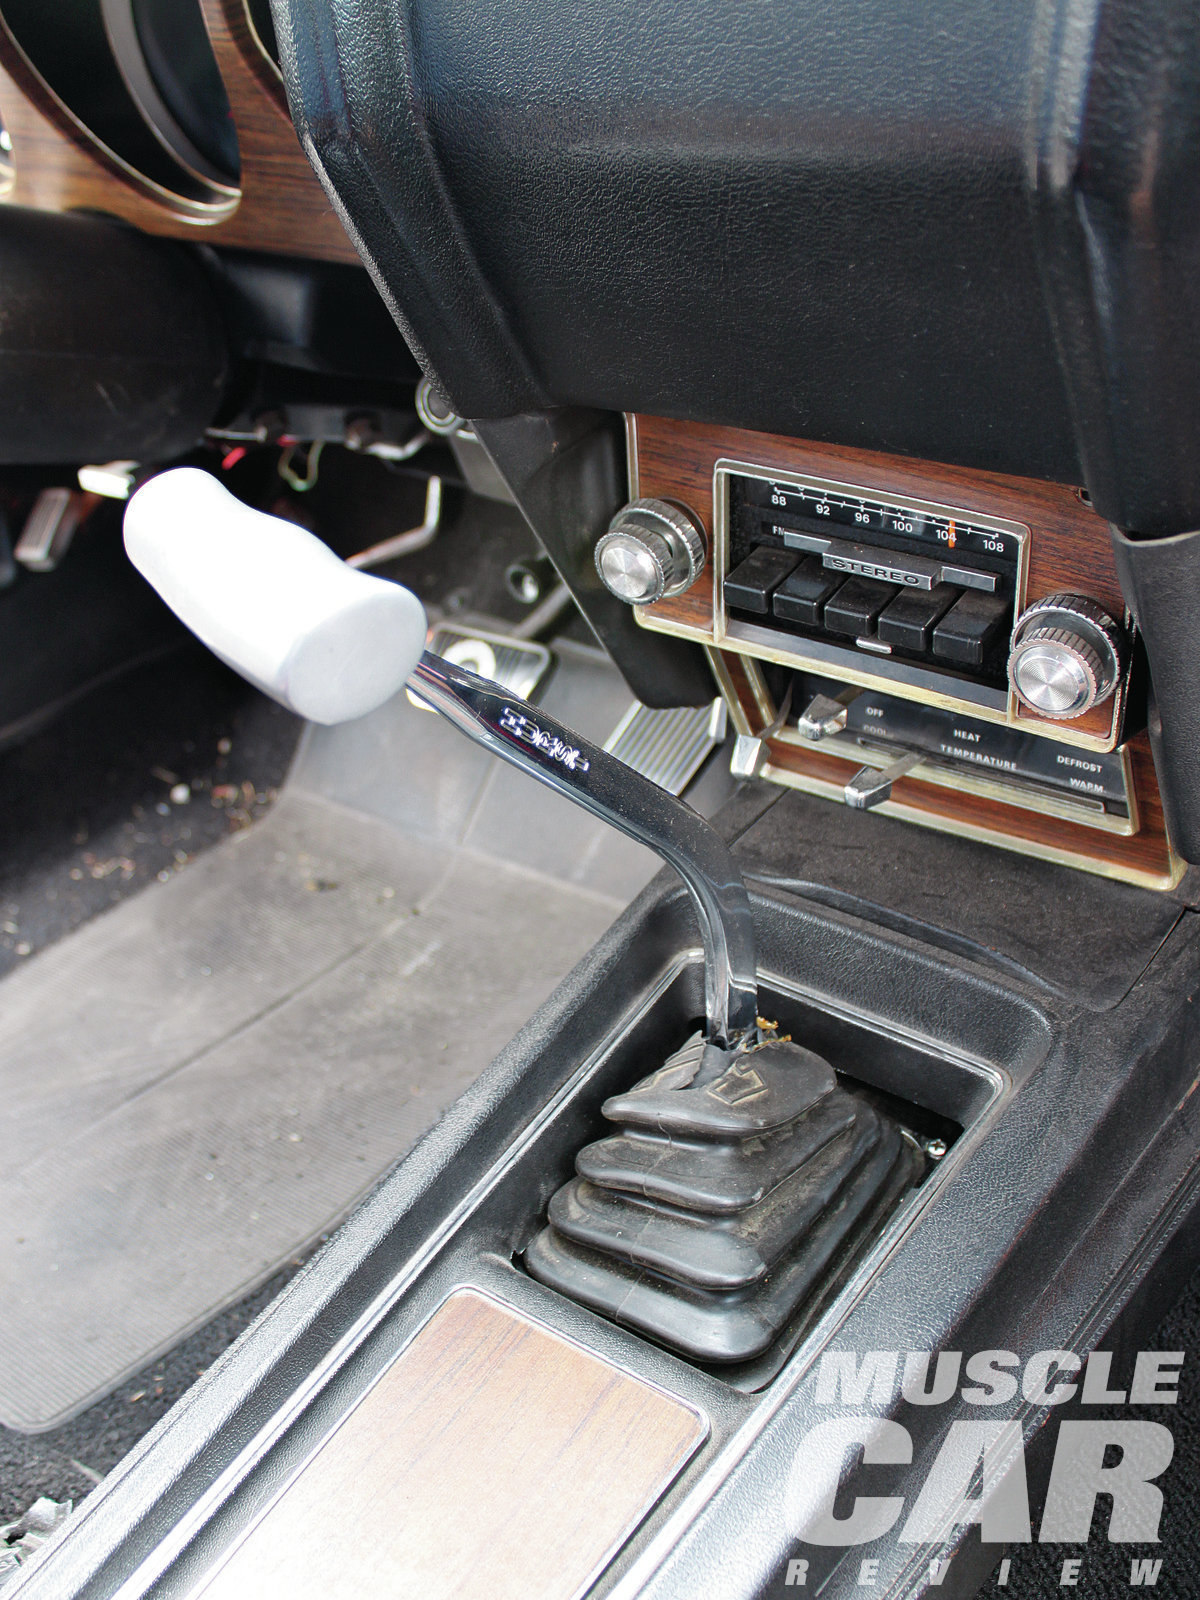 After the car's original drivetrain was stolen, a junkyard put in a standard 429 and a C6 automatic to make it a driver again. Keith replaced the engine and the trans using a NASCAR Toploader four-speed stirred with this Hurst T-handle shifter.